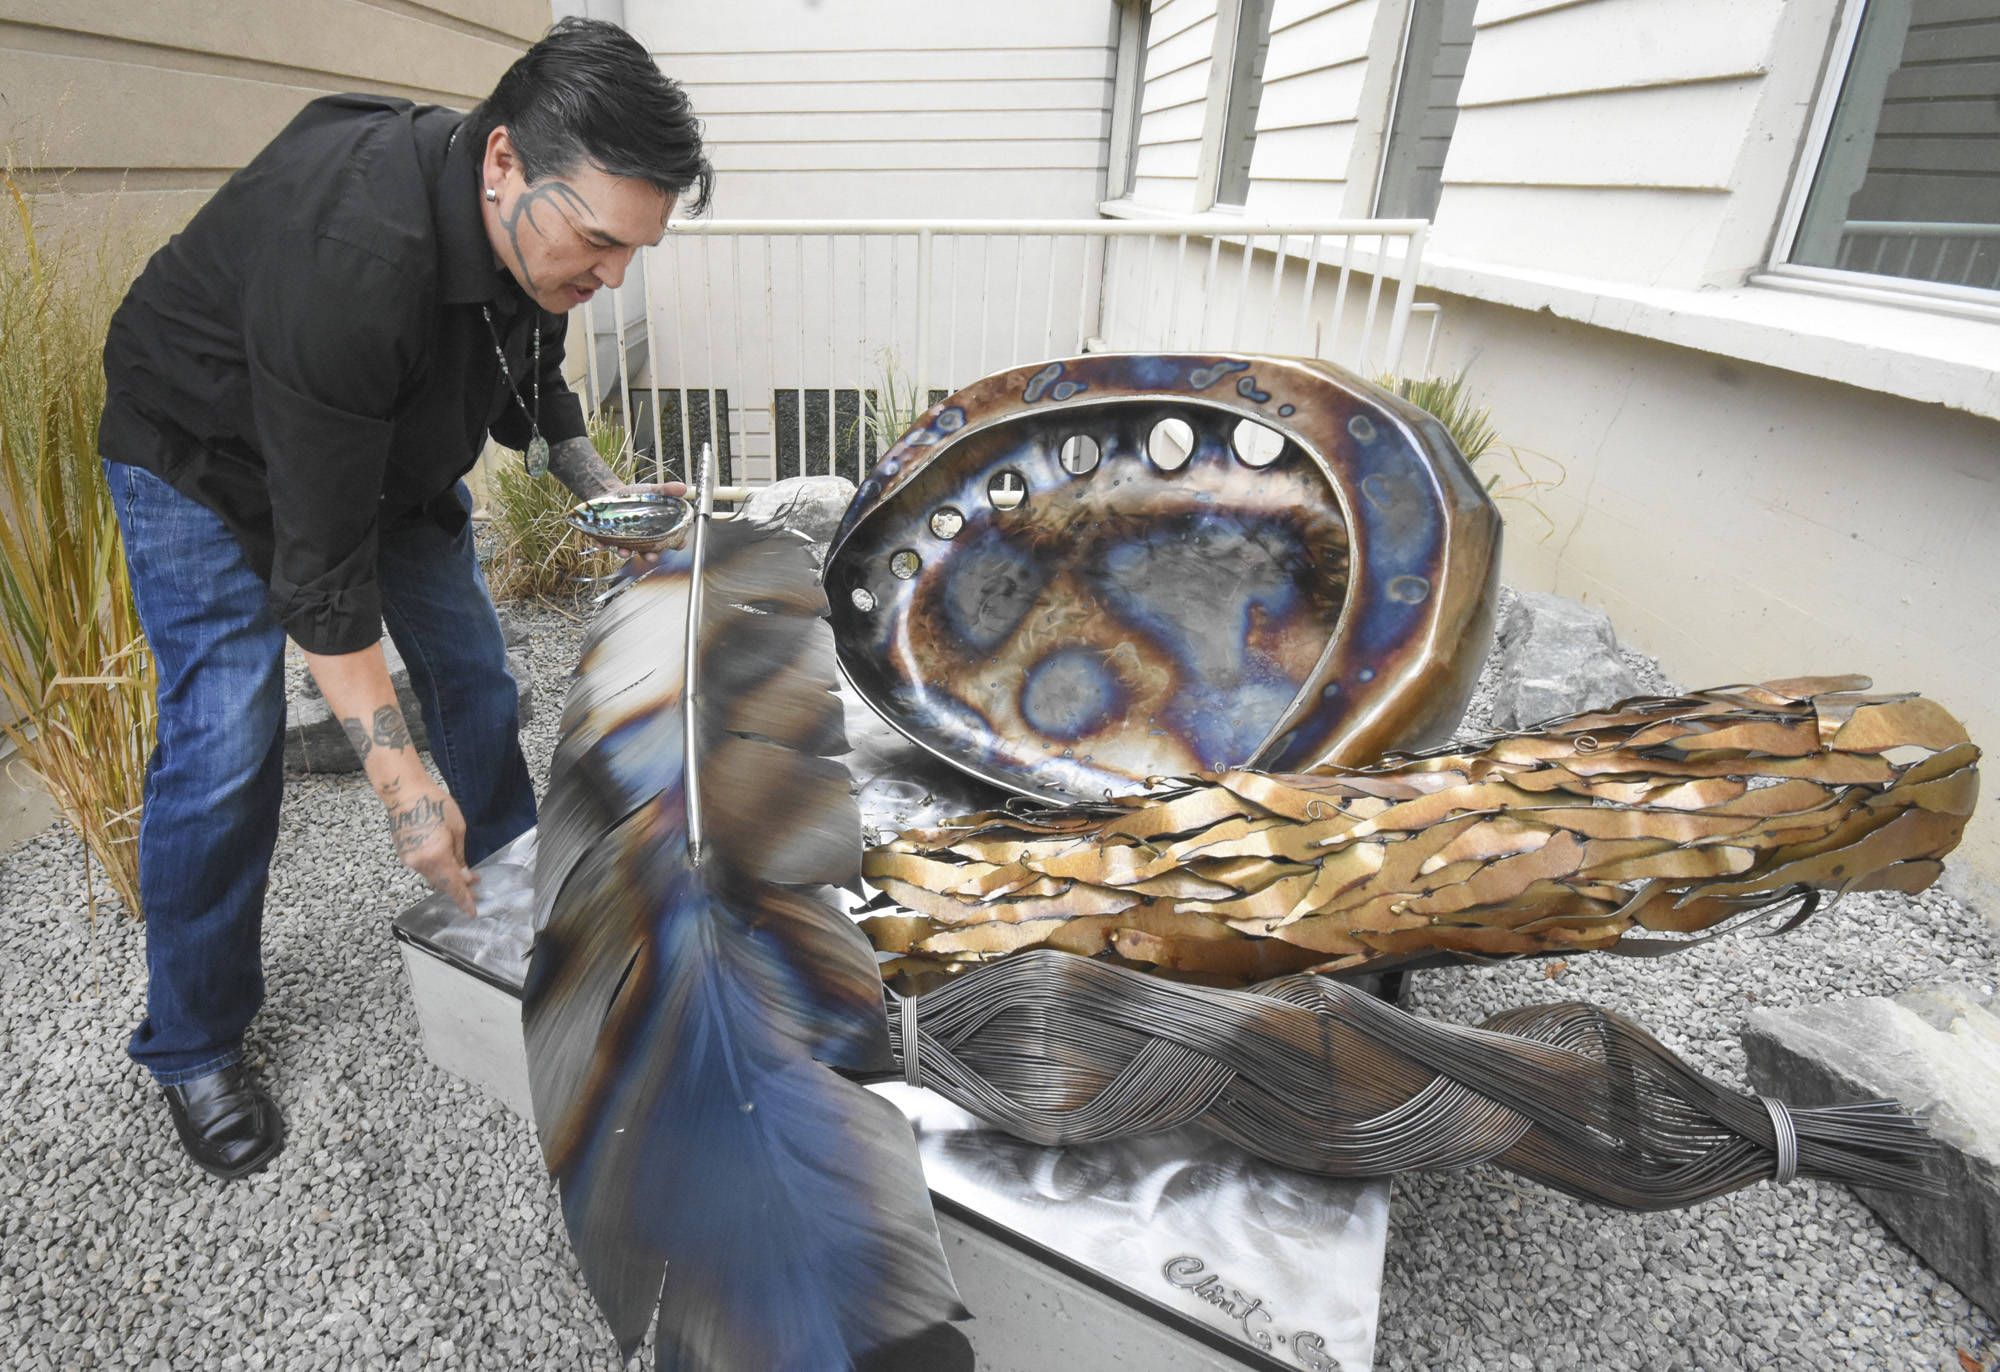 An artist sprinkles ashes from a smudging ceremony on his sculpture unveiled at Penticton Regional Hospital in 2018. (Mark Brett/Western News)